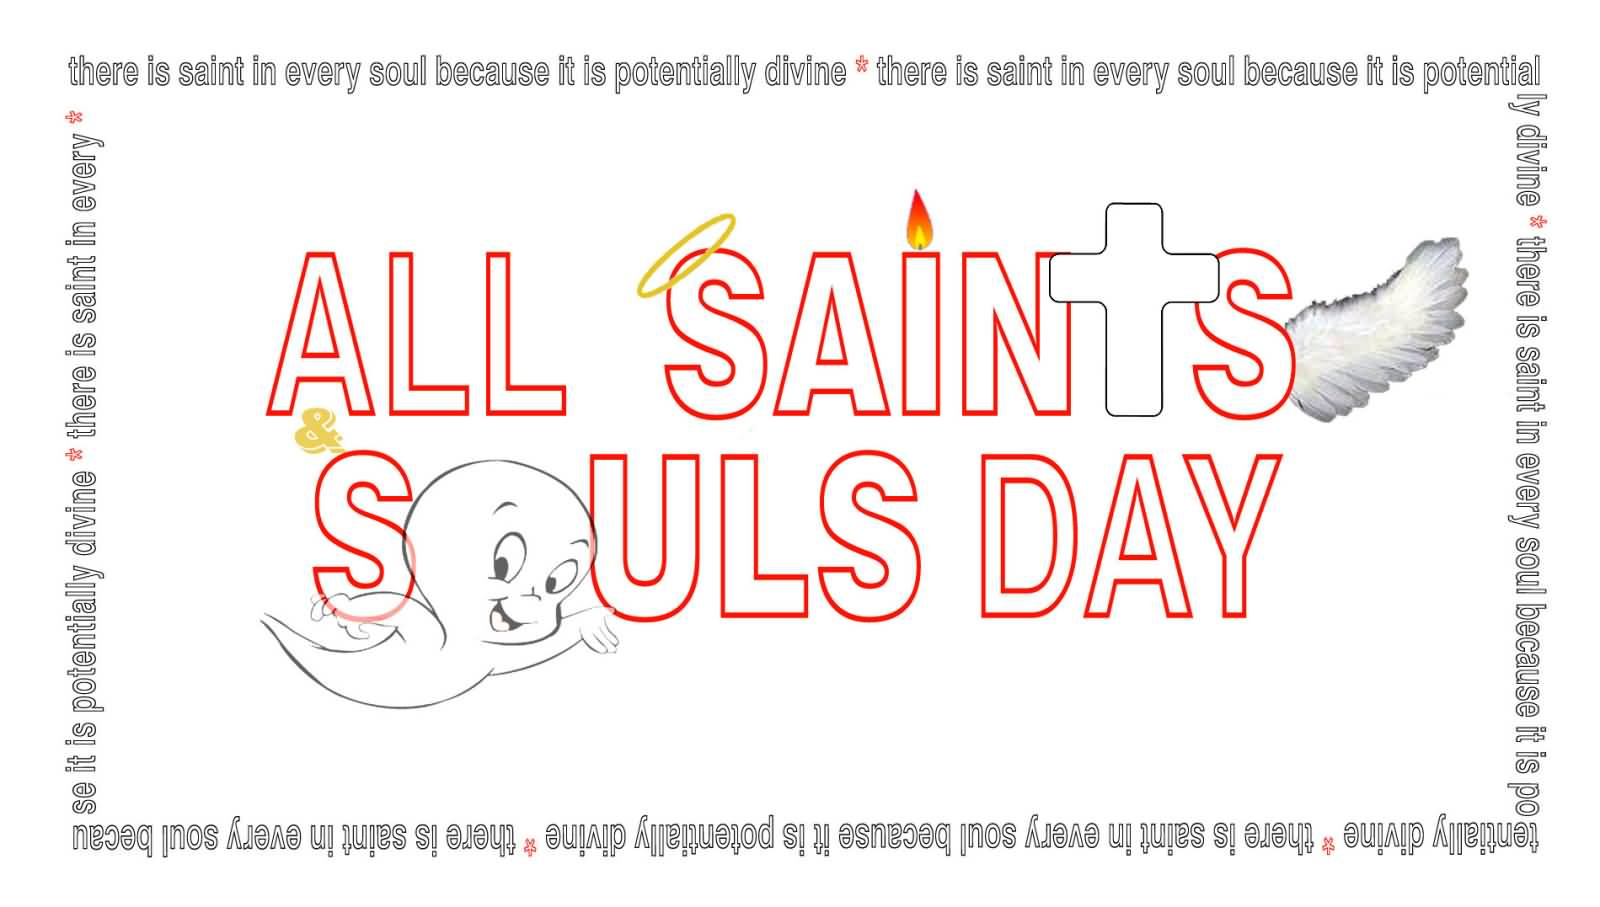 all saints all souls day greeting card all saints day clip art prayers all saints day clipart images